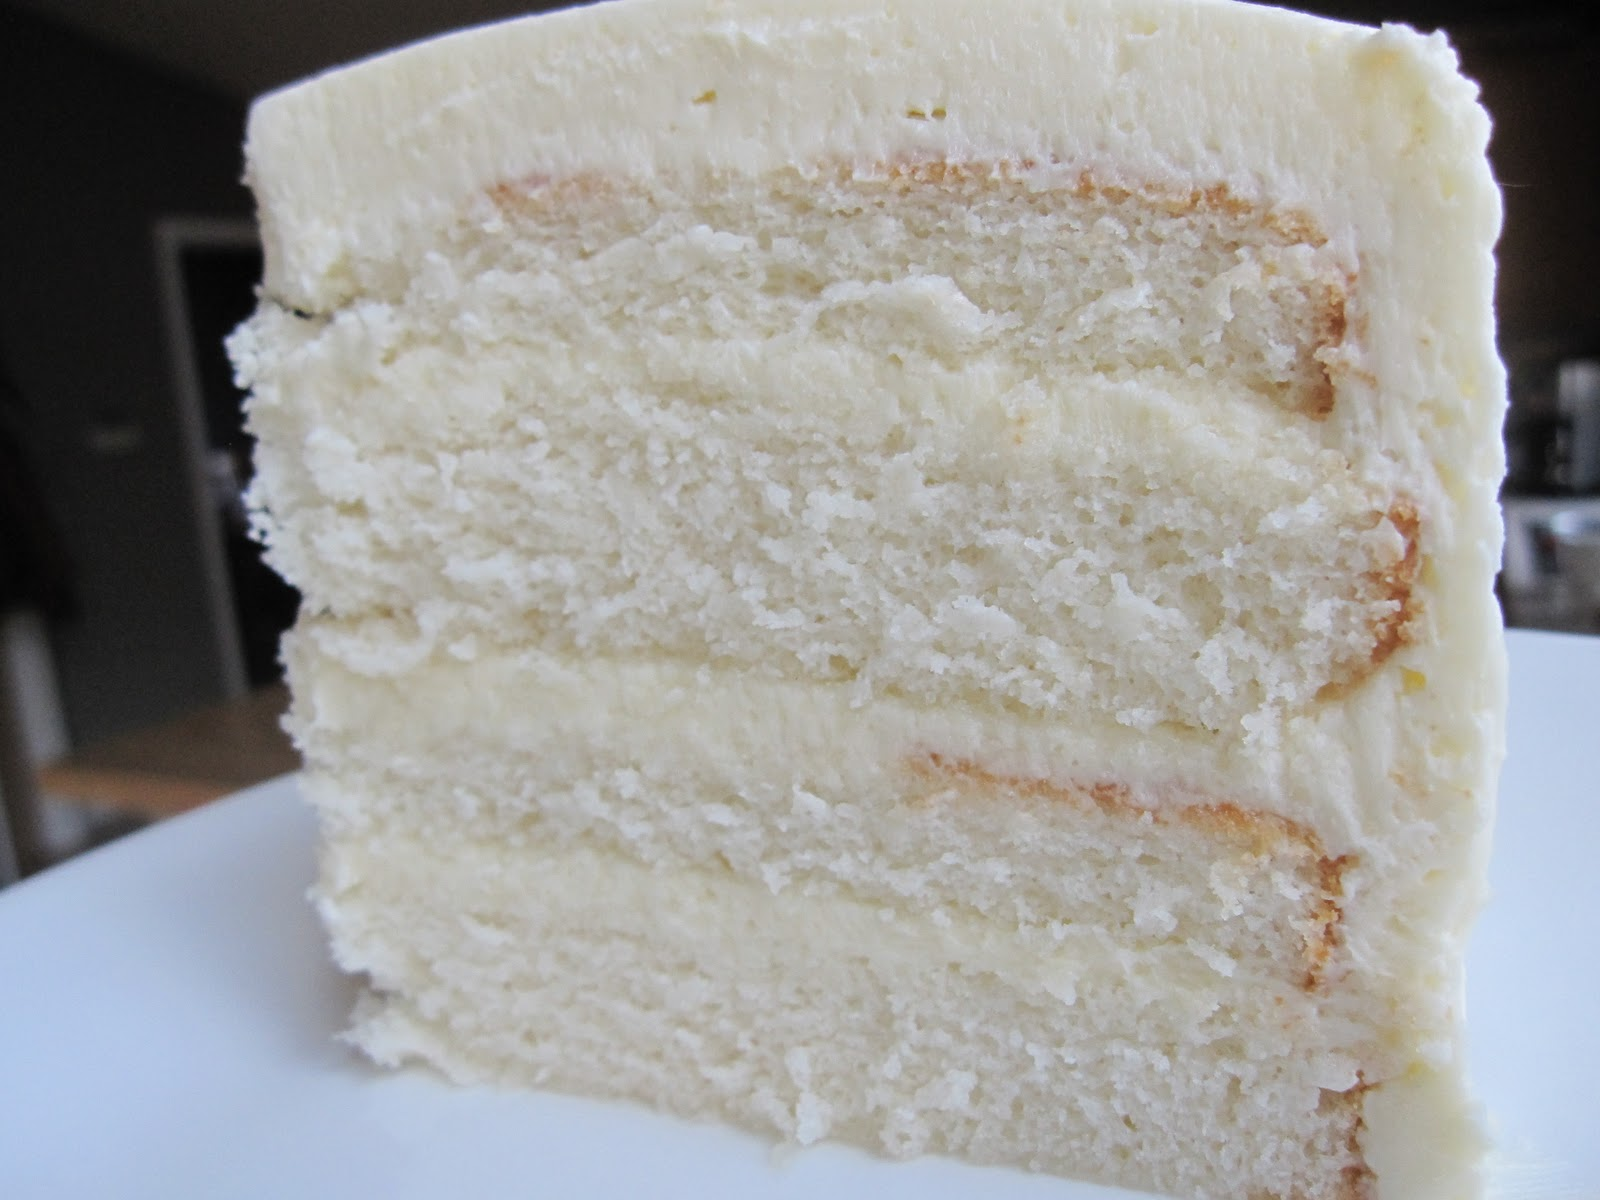 Fanksgiving: White Cake